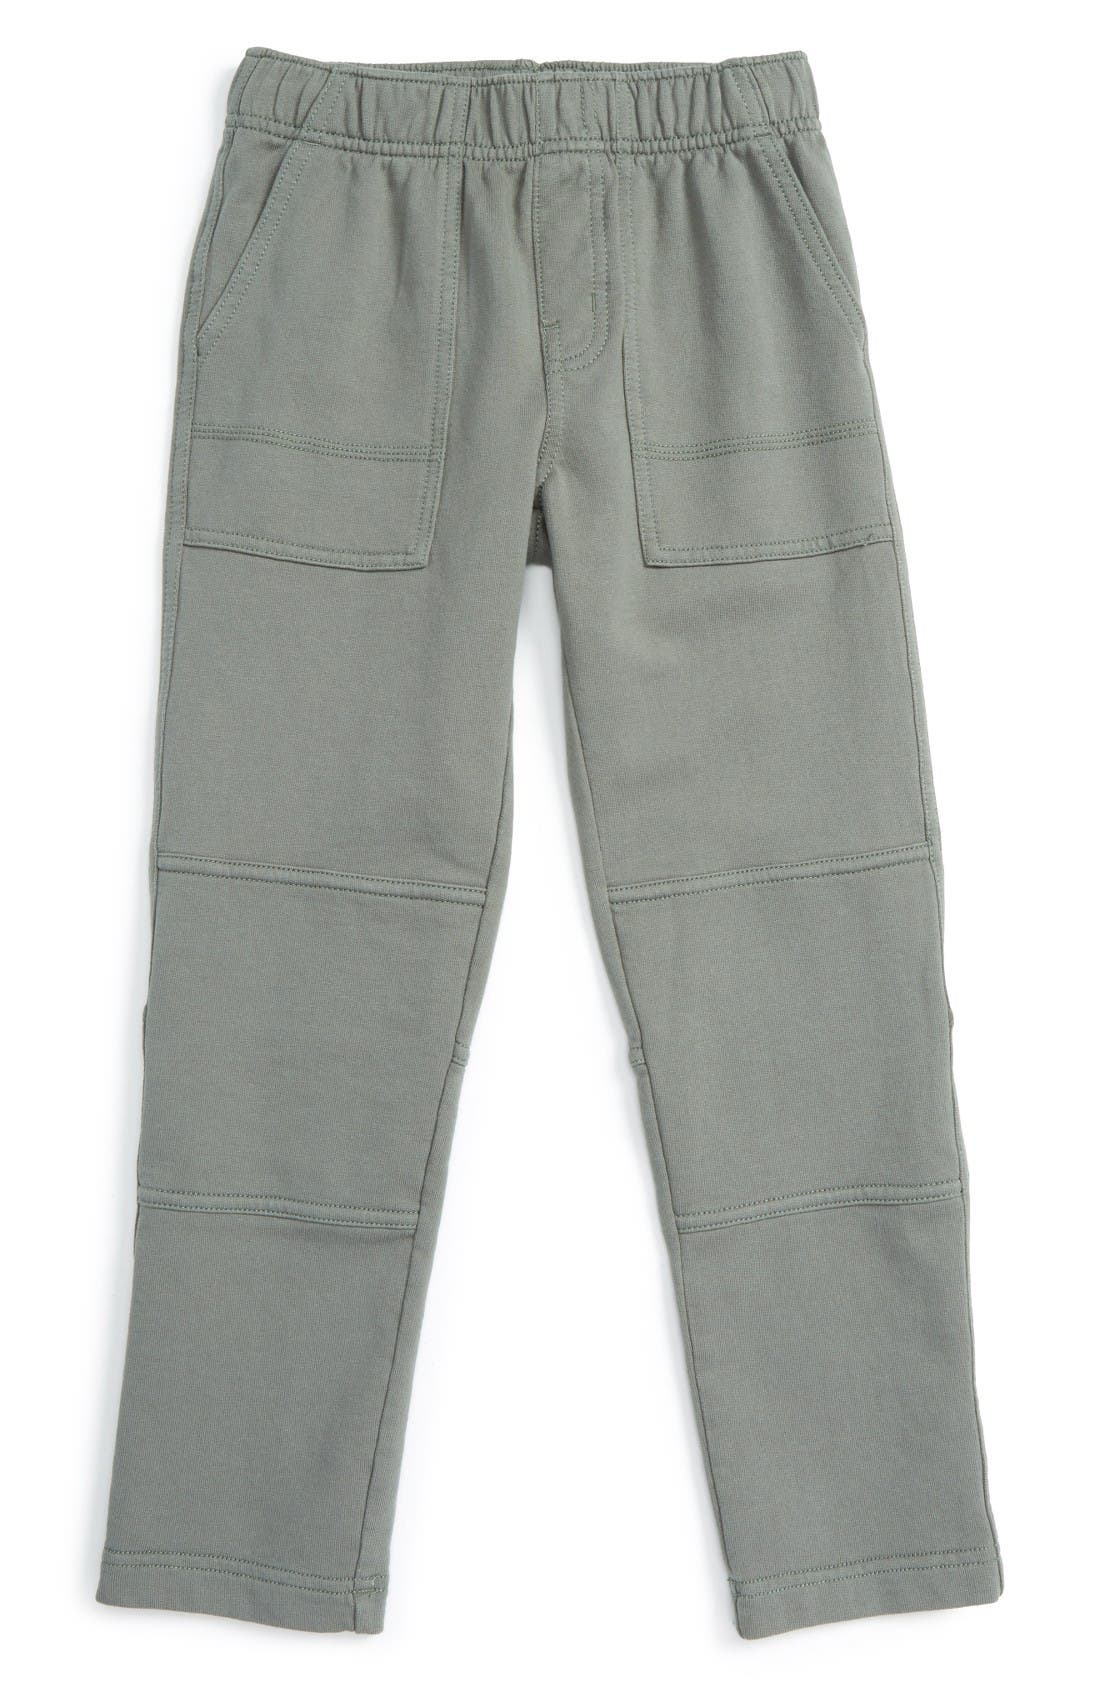 French Terry Pants,                             Main thumbnail 1, color,                             OLIVE DRAB